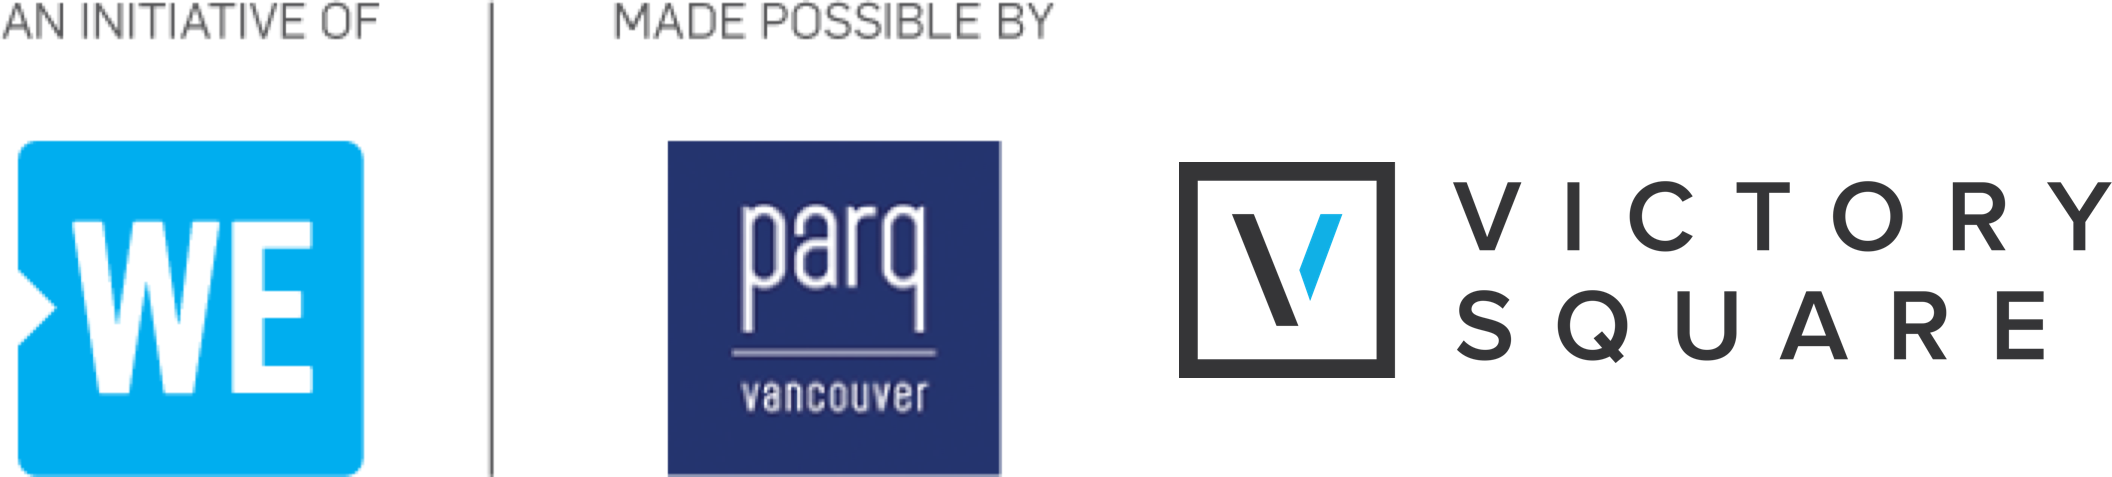 WE Care Vancouver is brought to you with the generous support of our co-title sponsors, Parq Vancouver and Victory Square